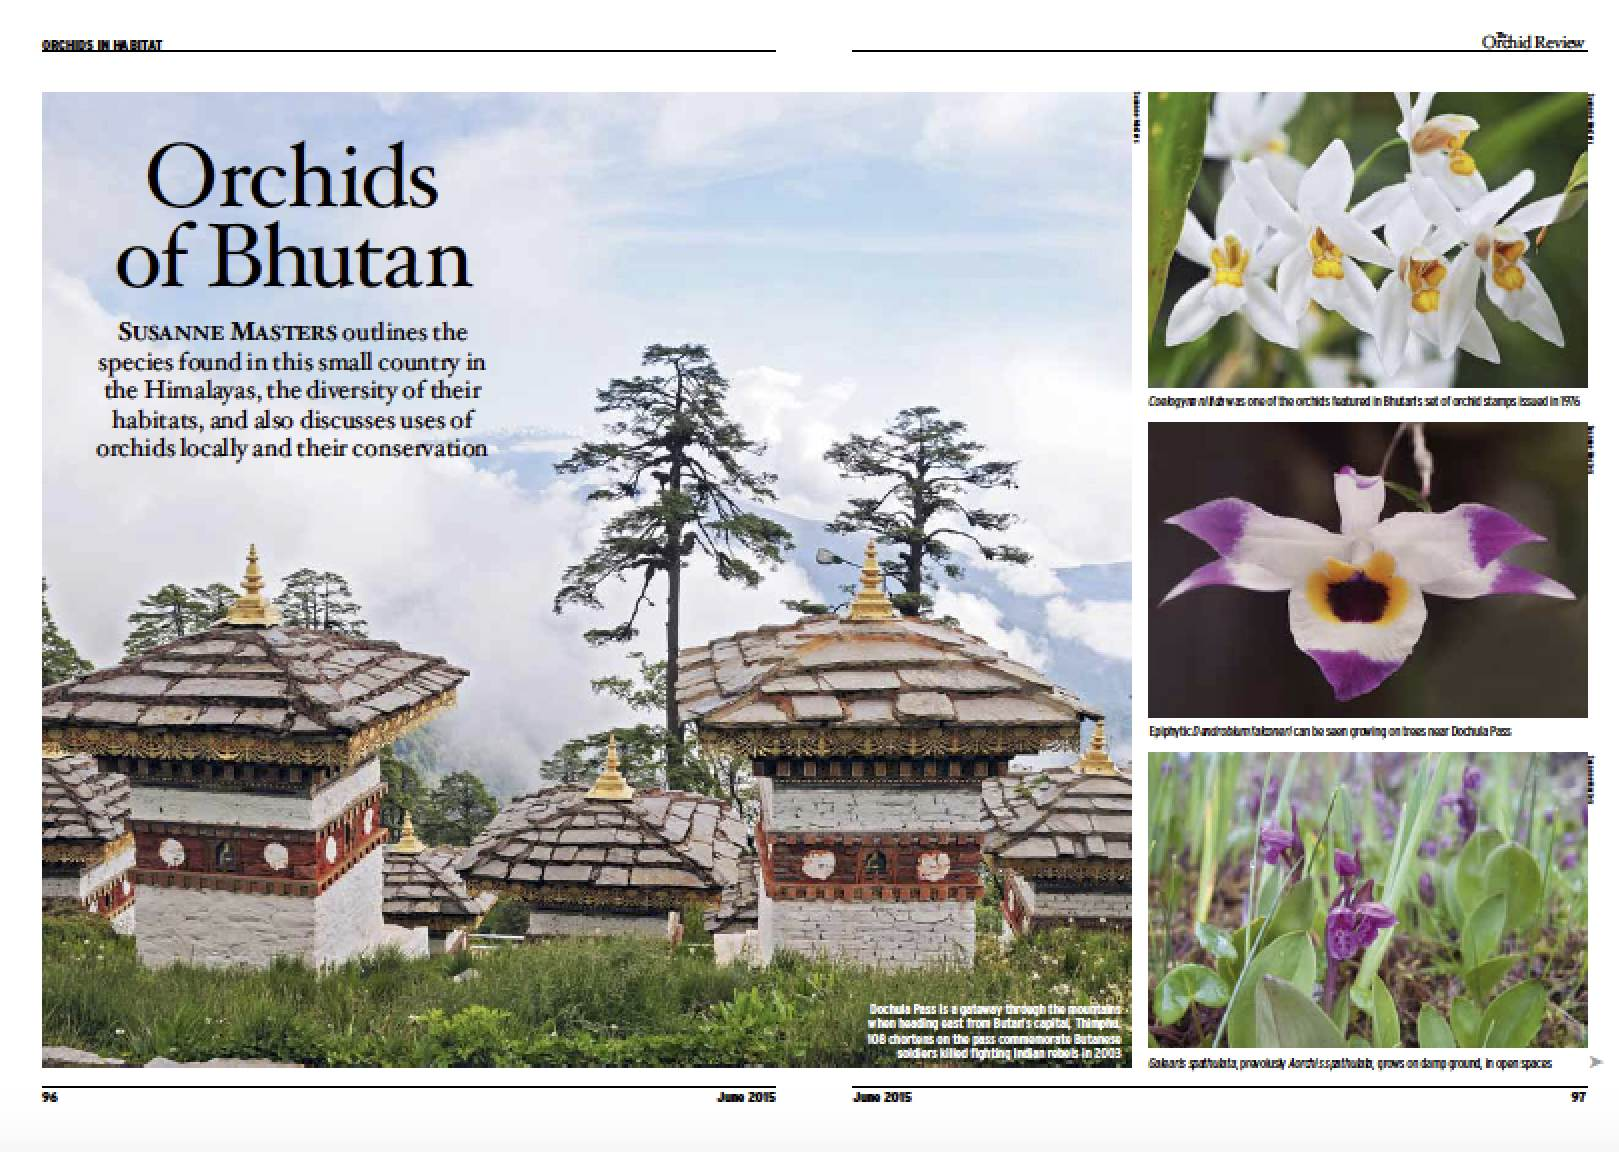 Orchid Review Orchids of Bhutan